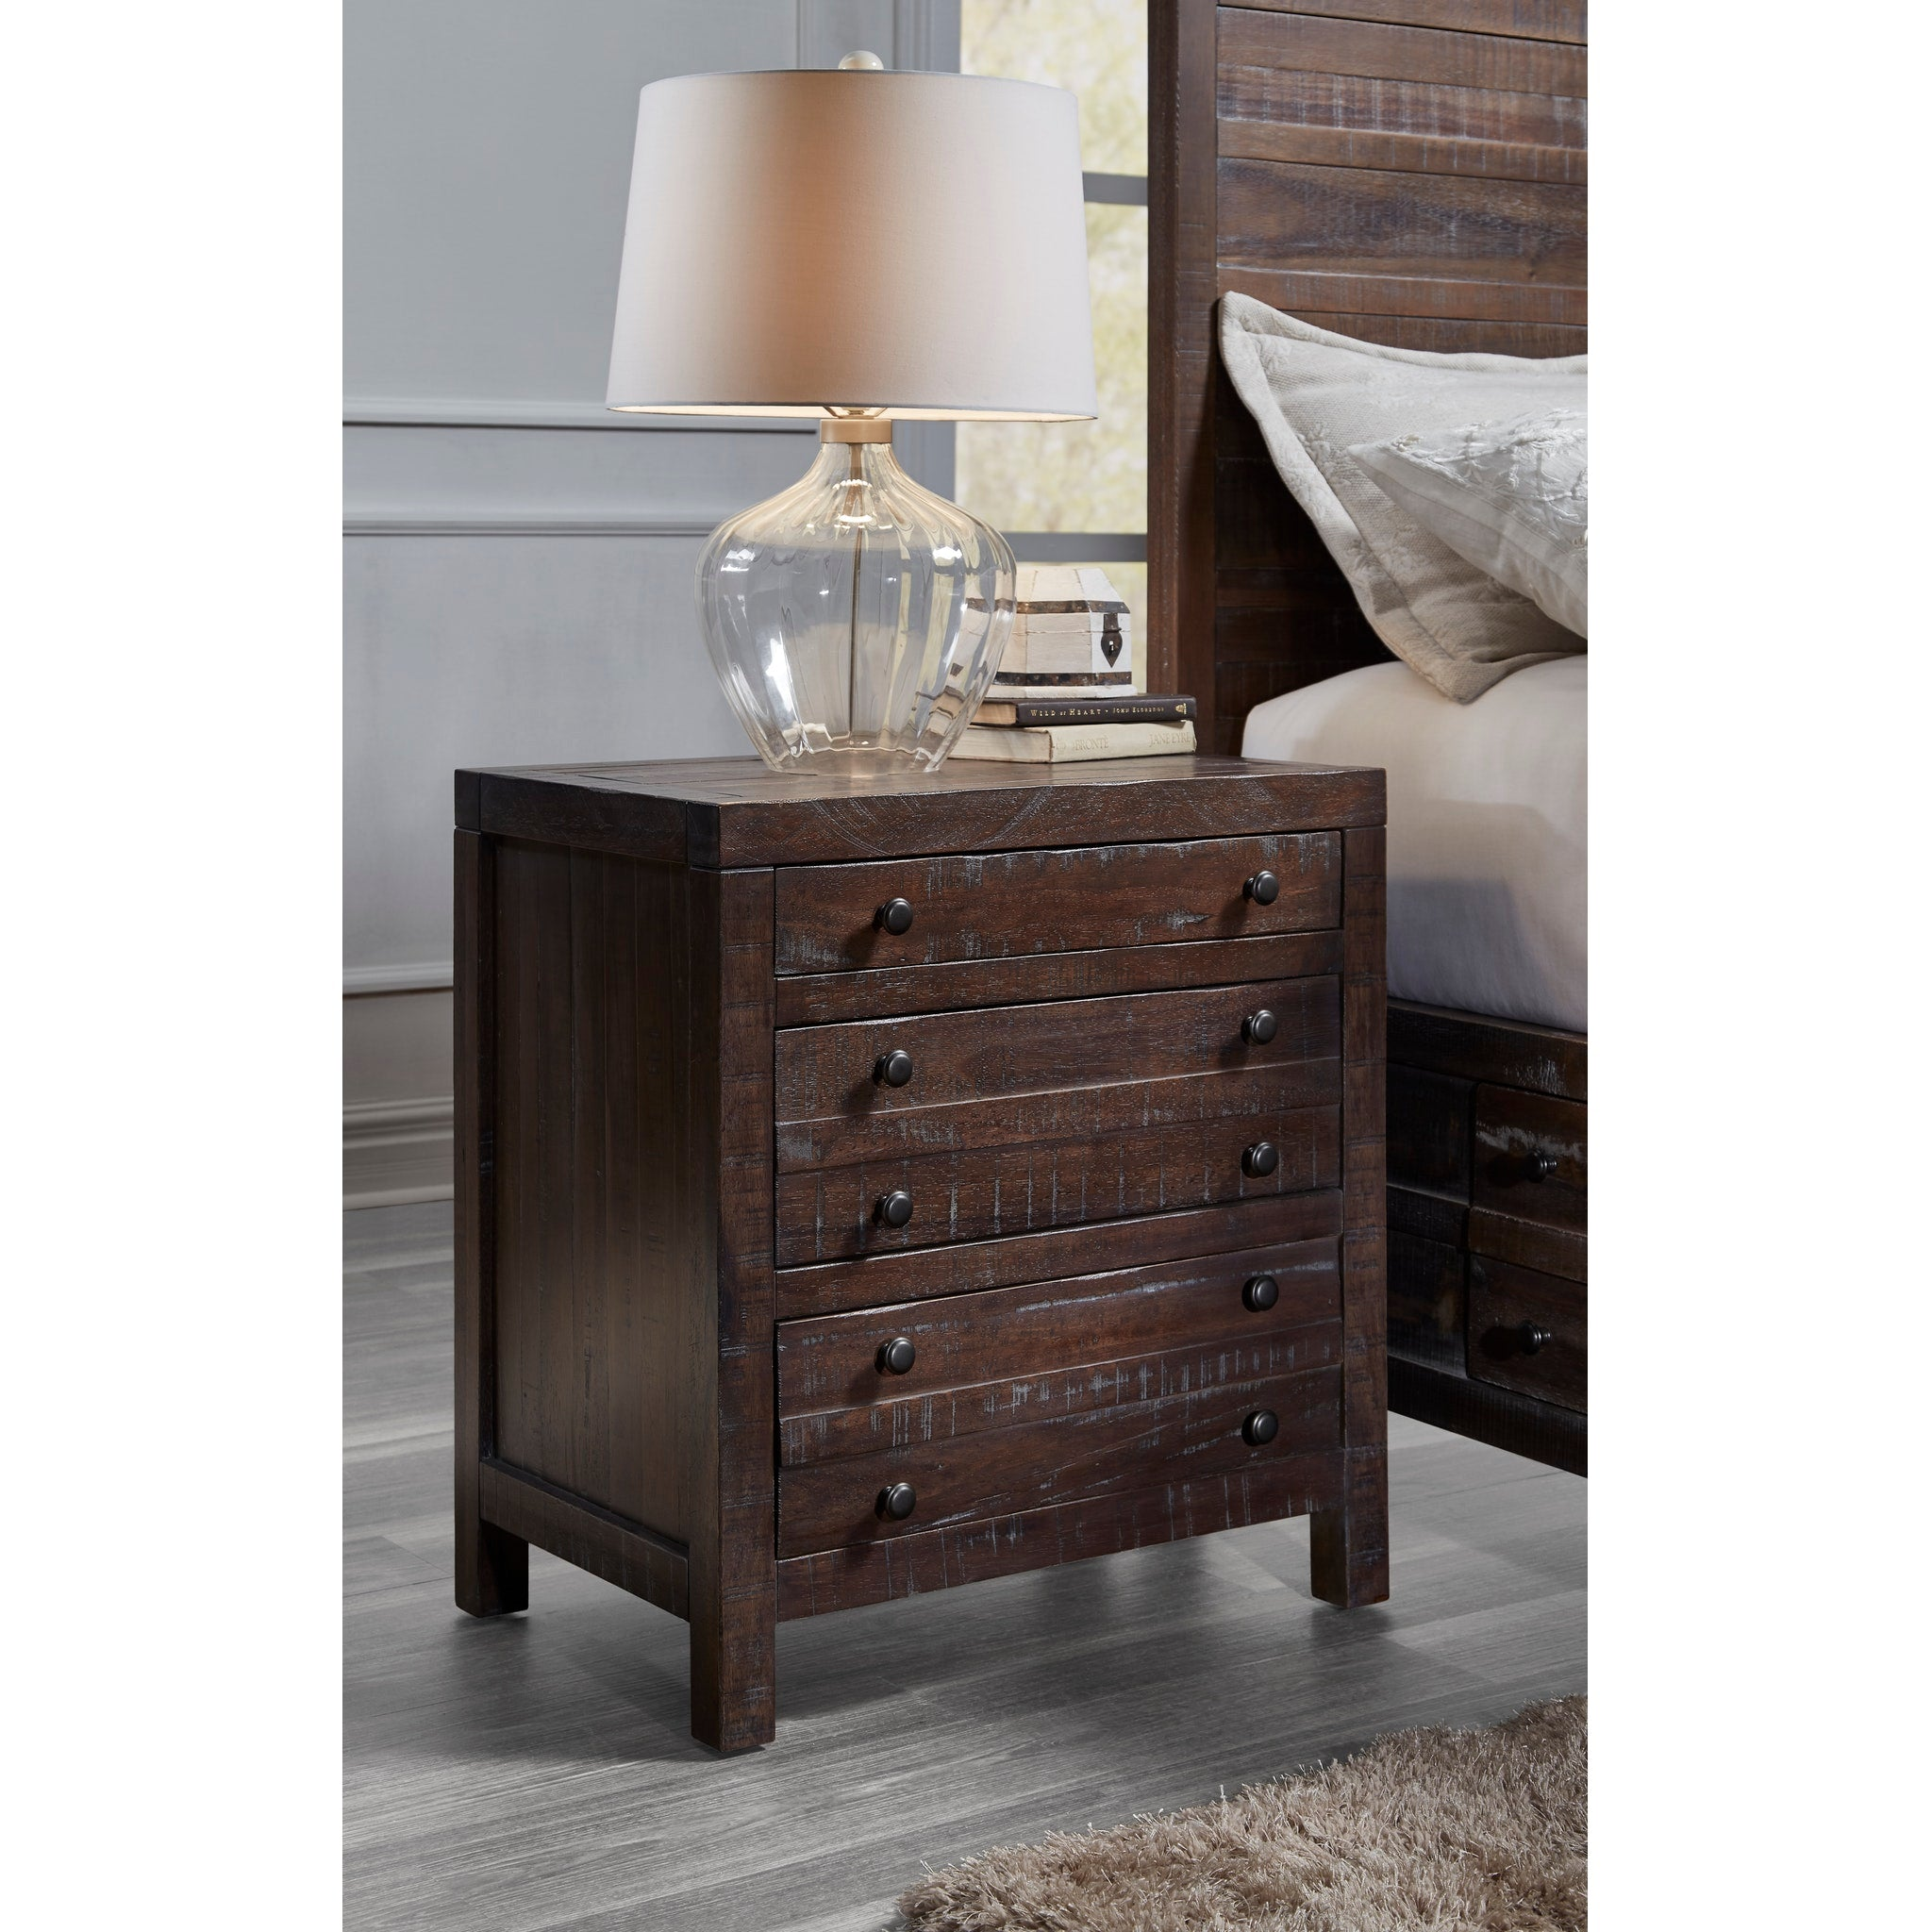 Townsend Three Drawer Solid Wood Nightstand in Java